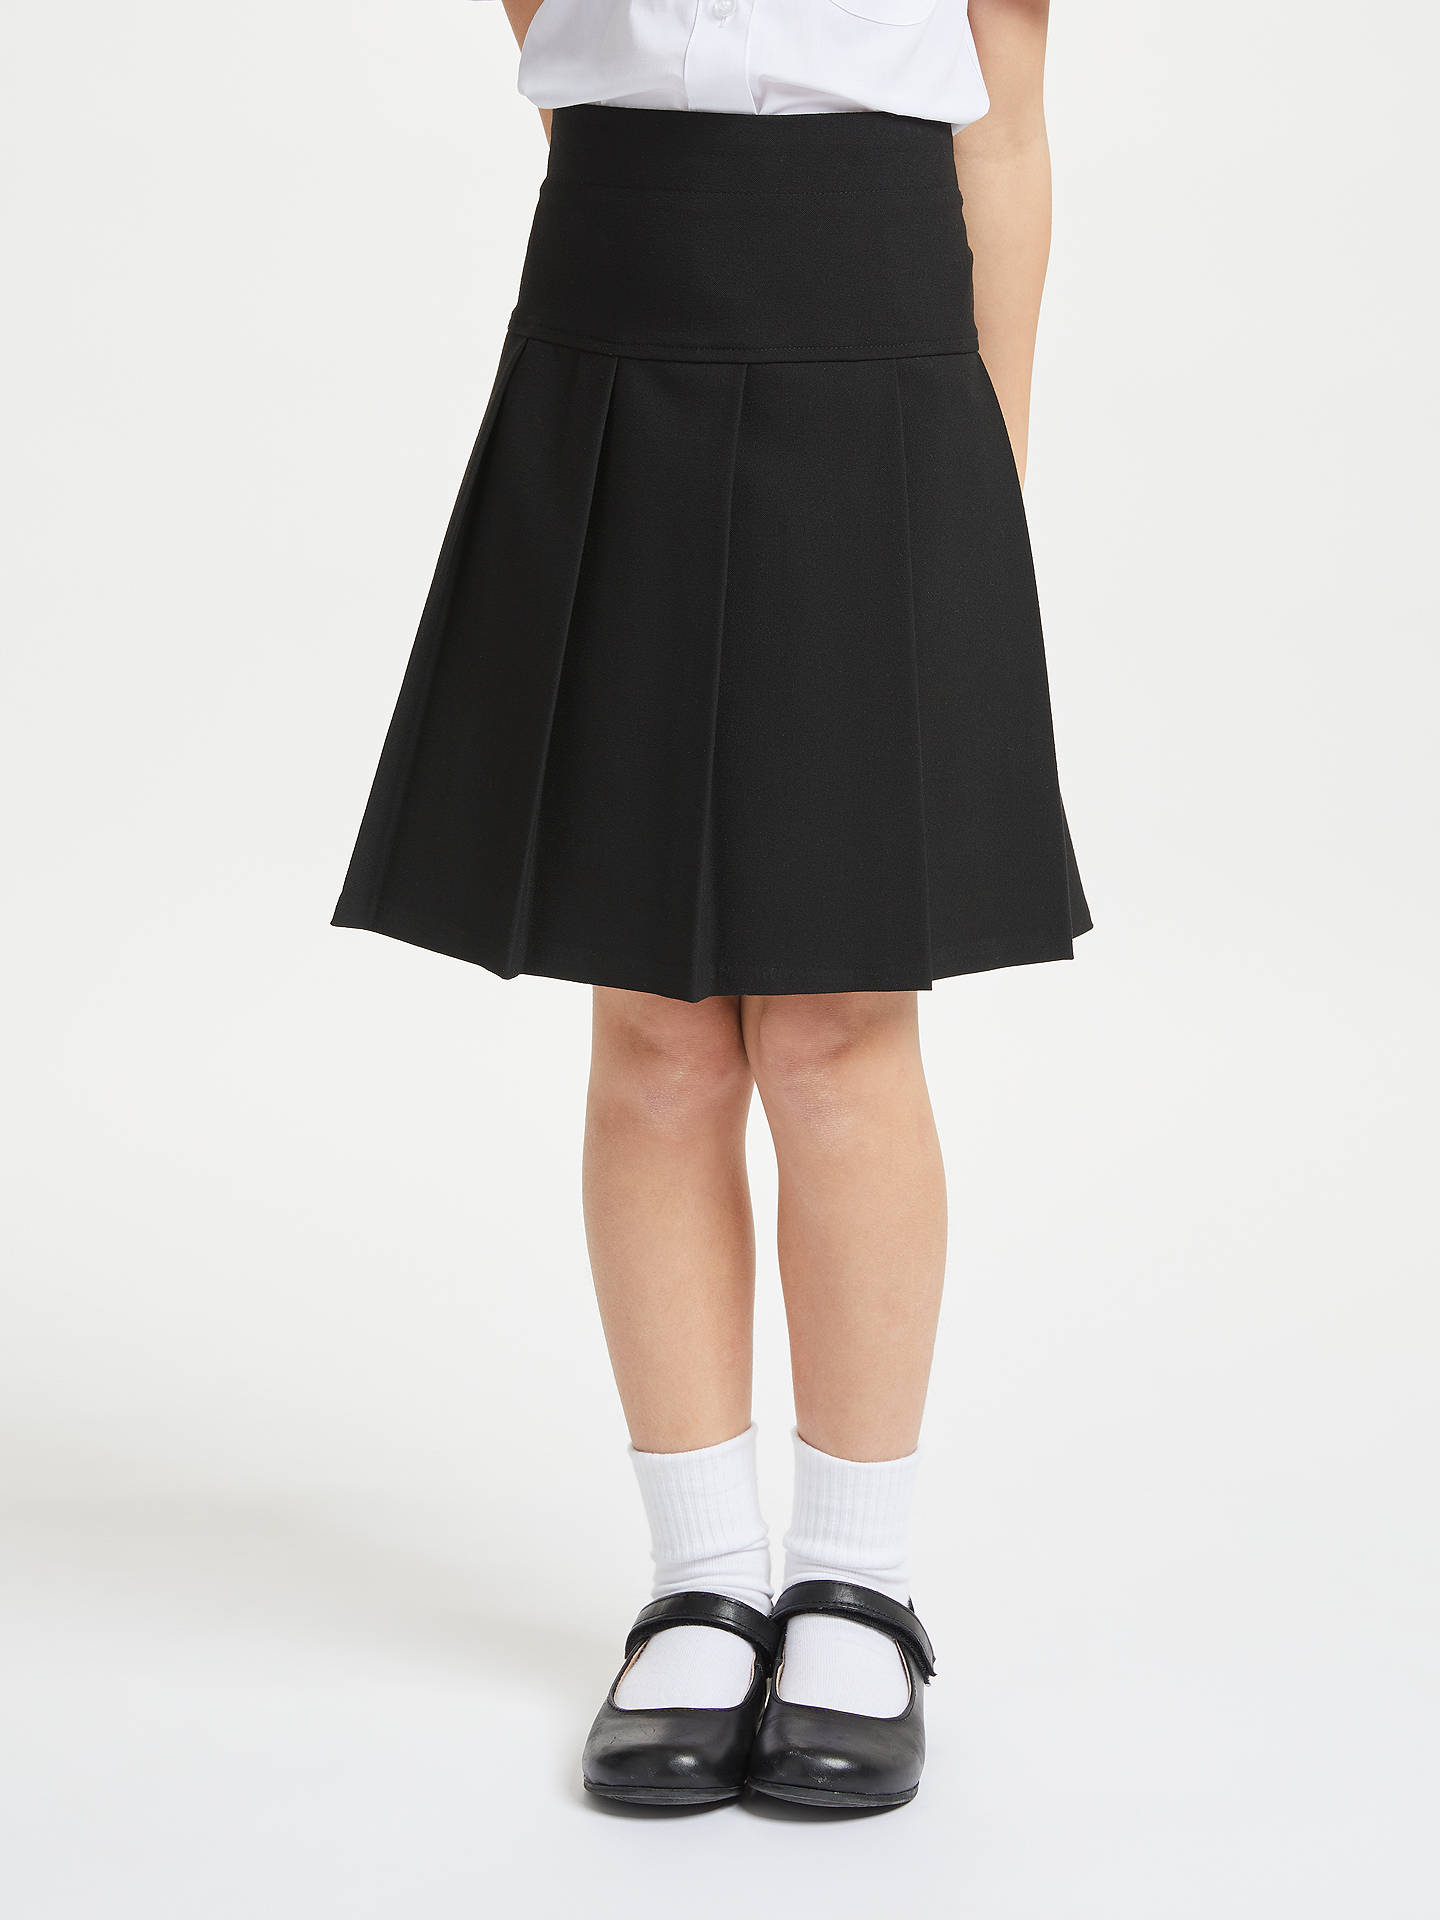 1f0f0c7f7fee Buy John Lewis & Partners Girls' Panel Pleated School Skirt, Black, 4 years  ...